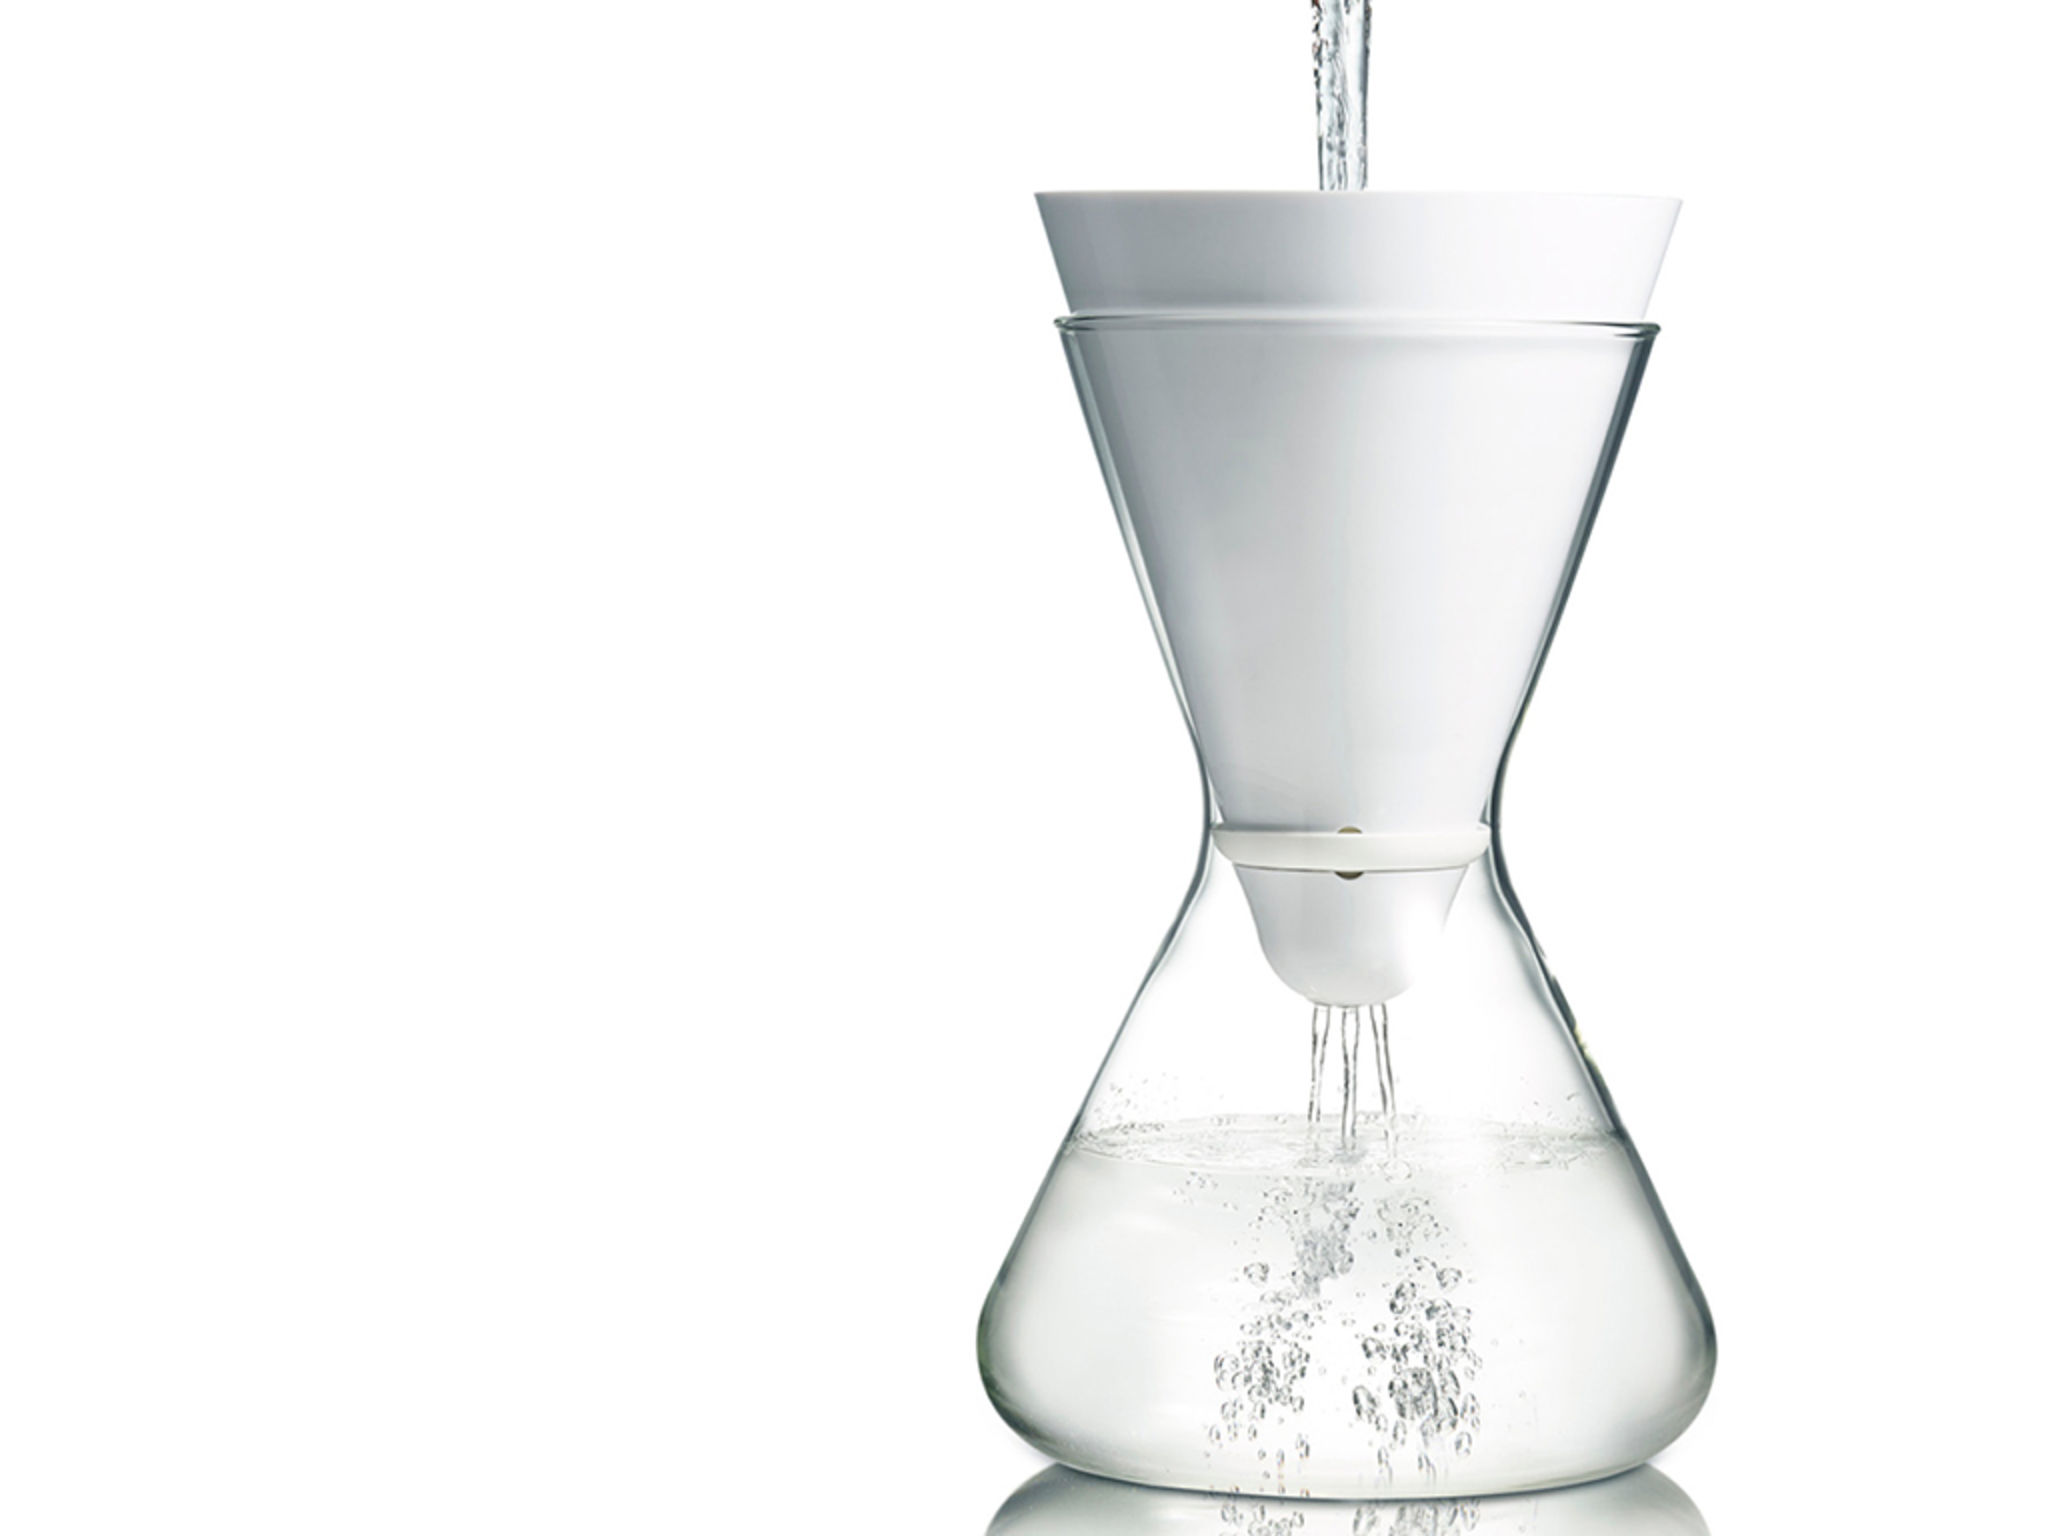 Soma Water Filter Entry iF WORLD DESIGN GUIDE